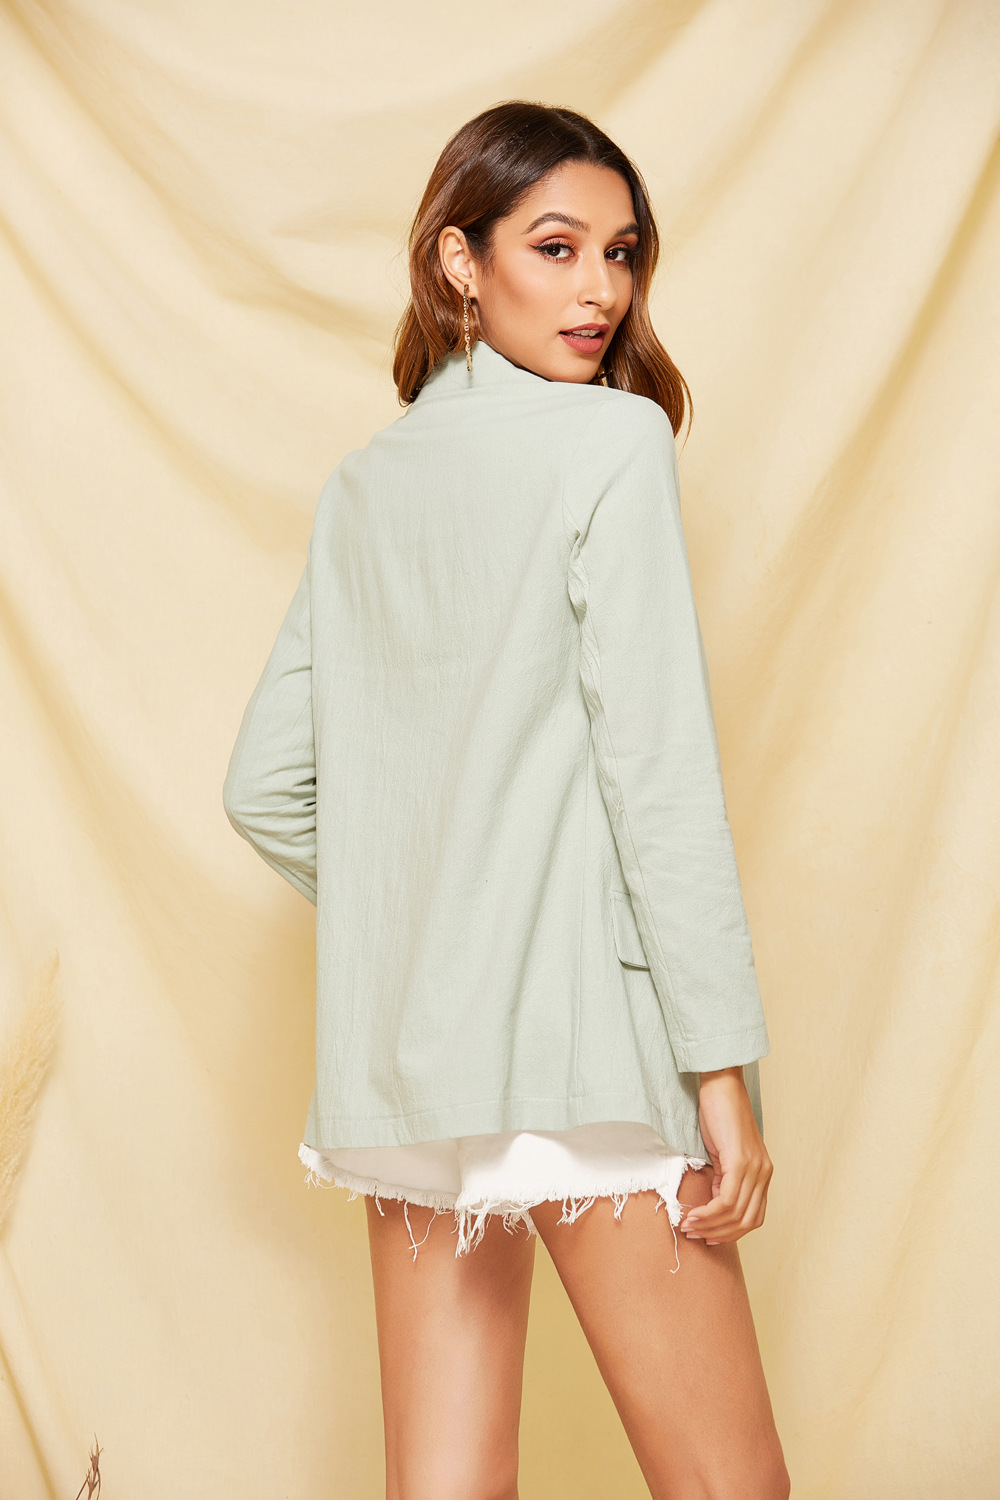 autumn and winter new products pink small suit jacket women's top two button long sleeve  NSDF351